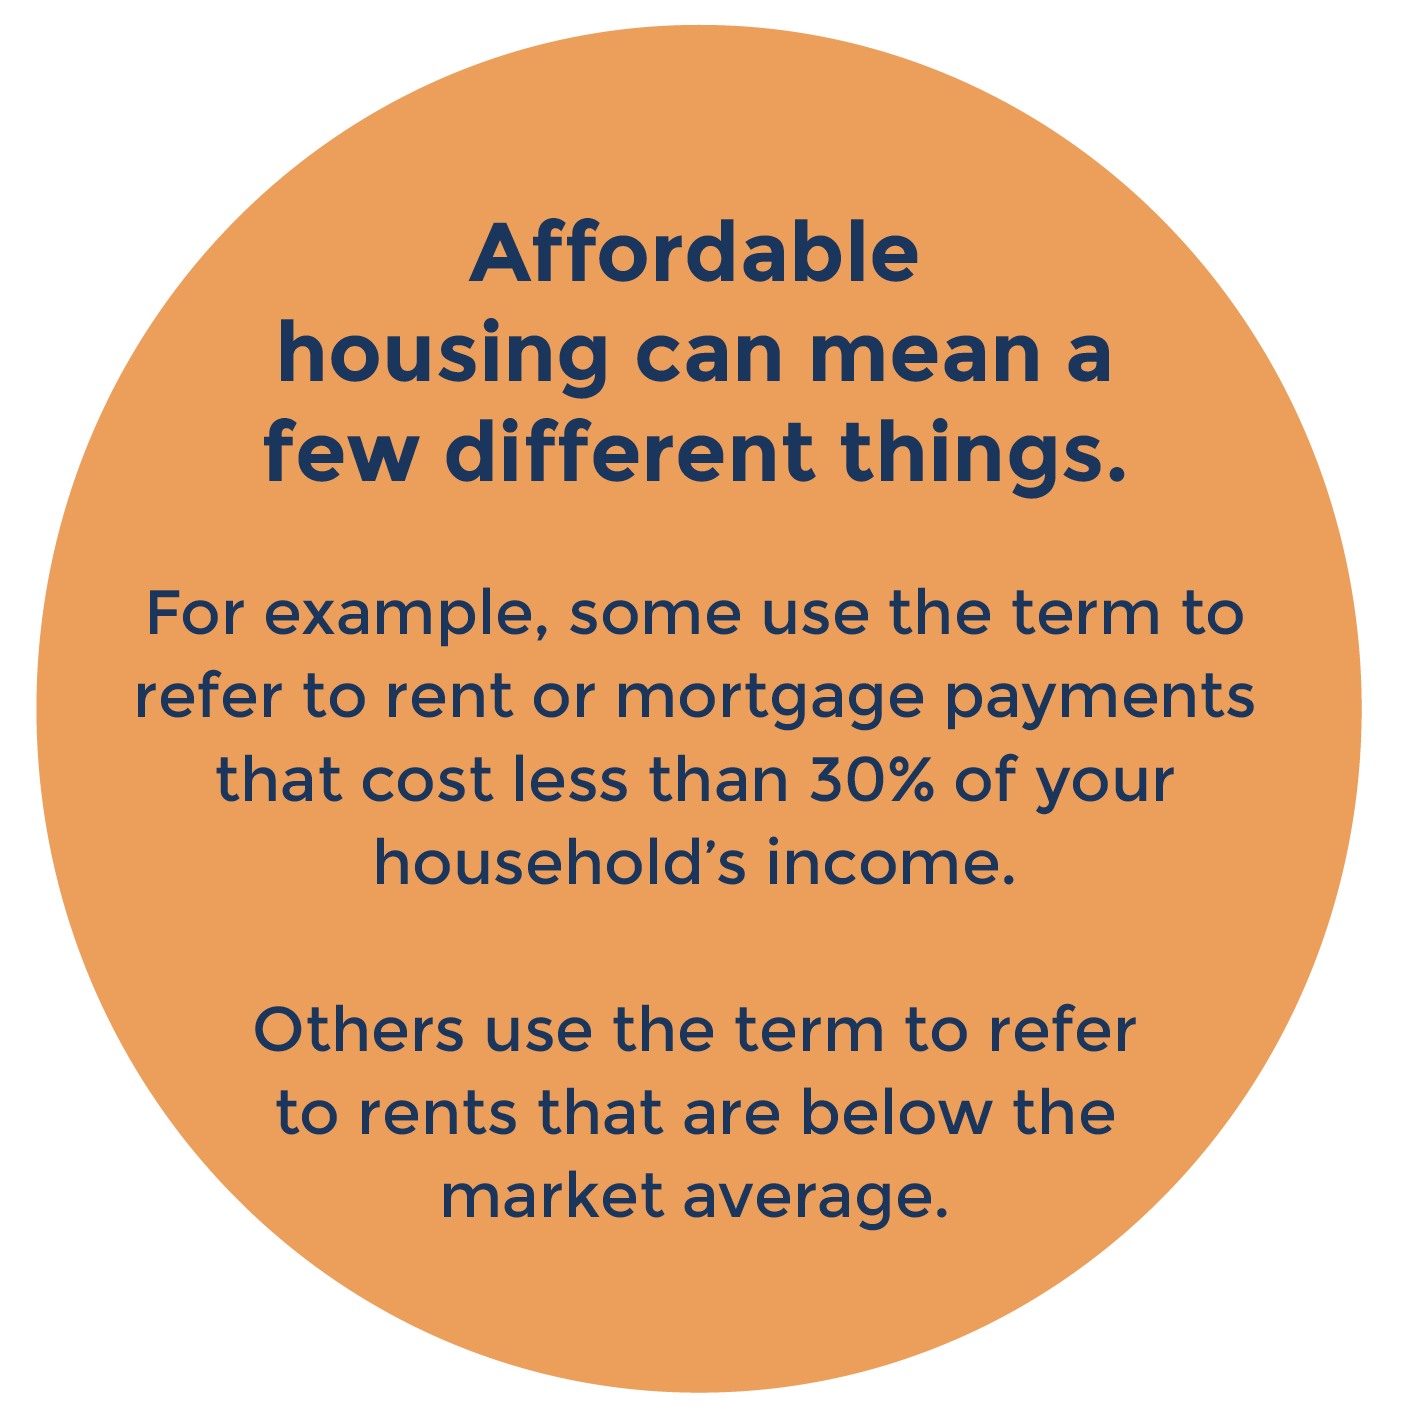 circle with text that includes: Affordable housing can mean a few different things. For example, some use the term to refer to rent or mortgage payments that cost less than 30% of your household's income. Others use the term to refer to rents below the market average.